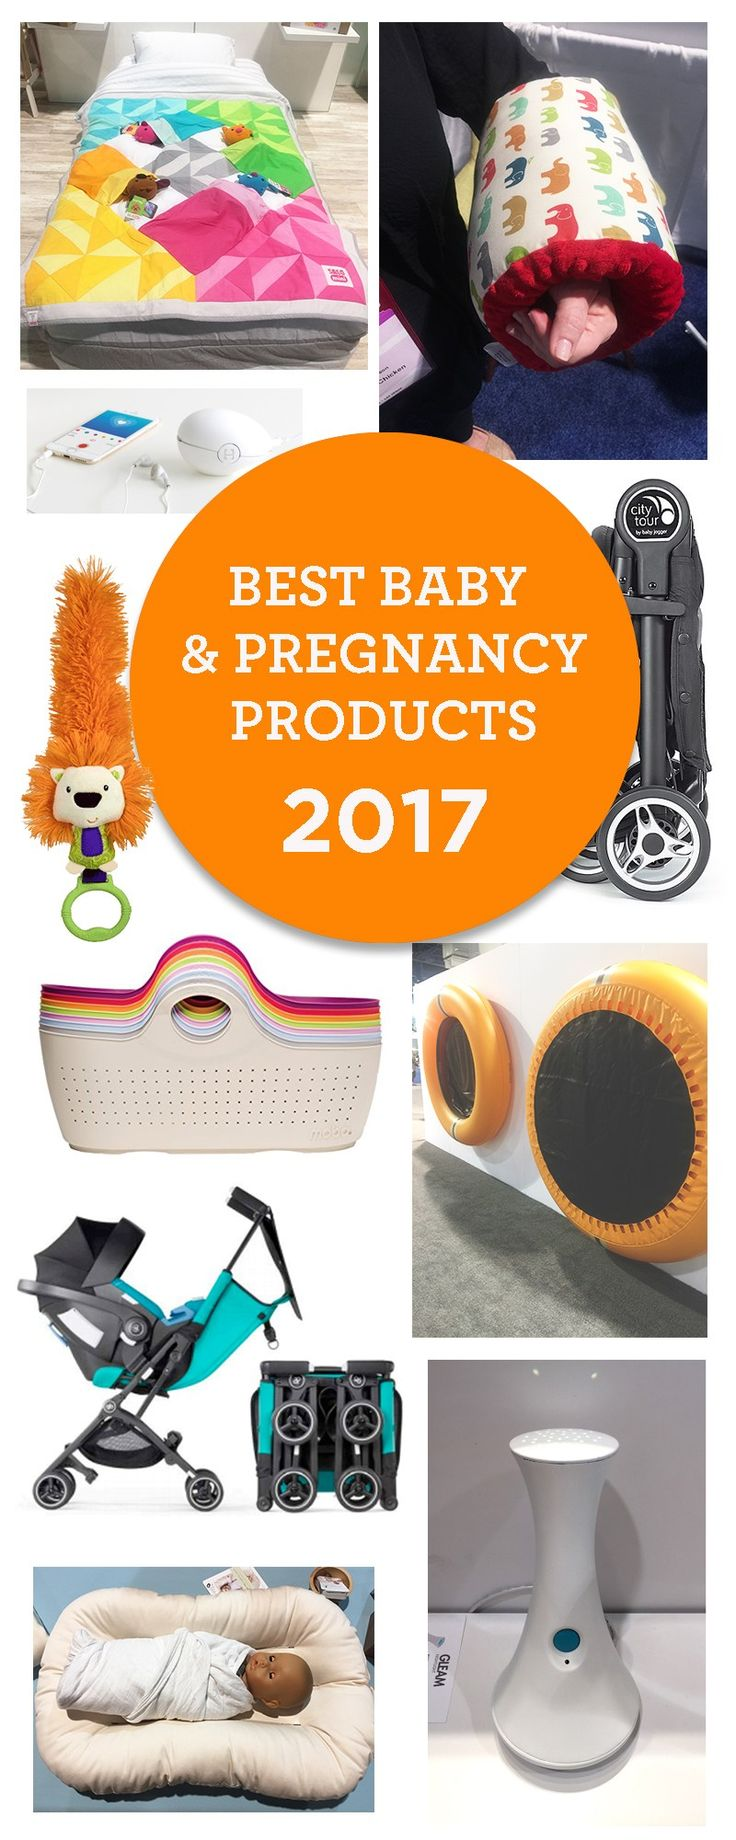 A sneak peek at the best baby and pregnancy products for 2017. From breastfeeding 'water wings' to super compact strollers some of this gear will blow your mind.